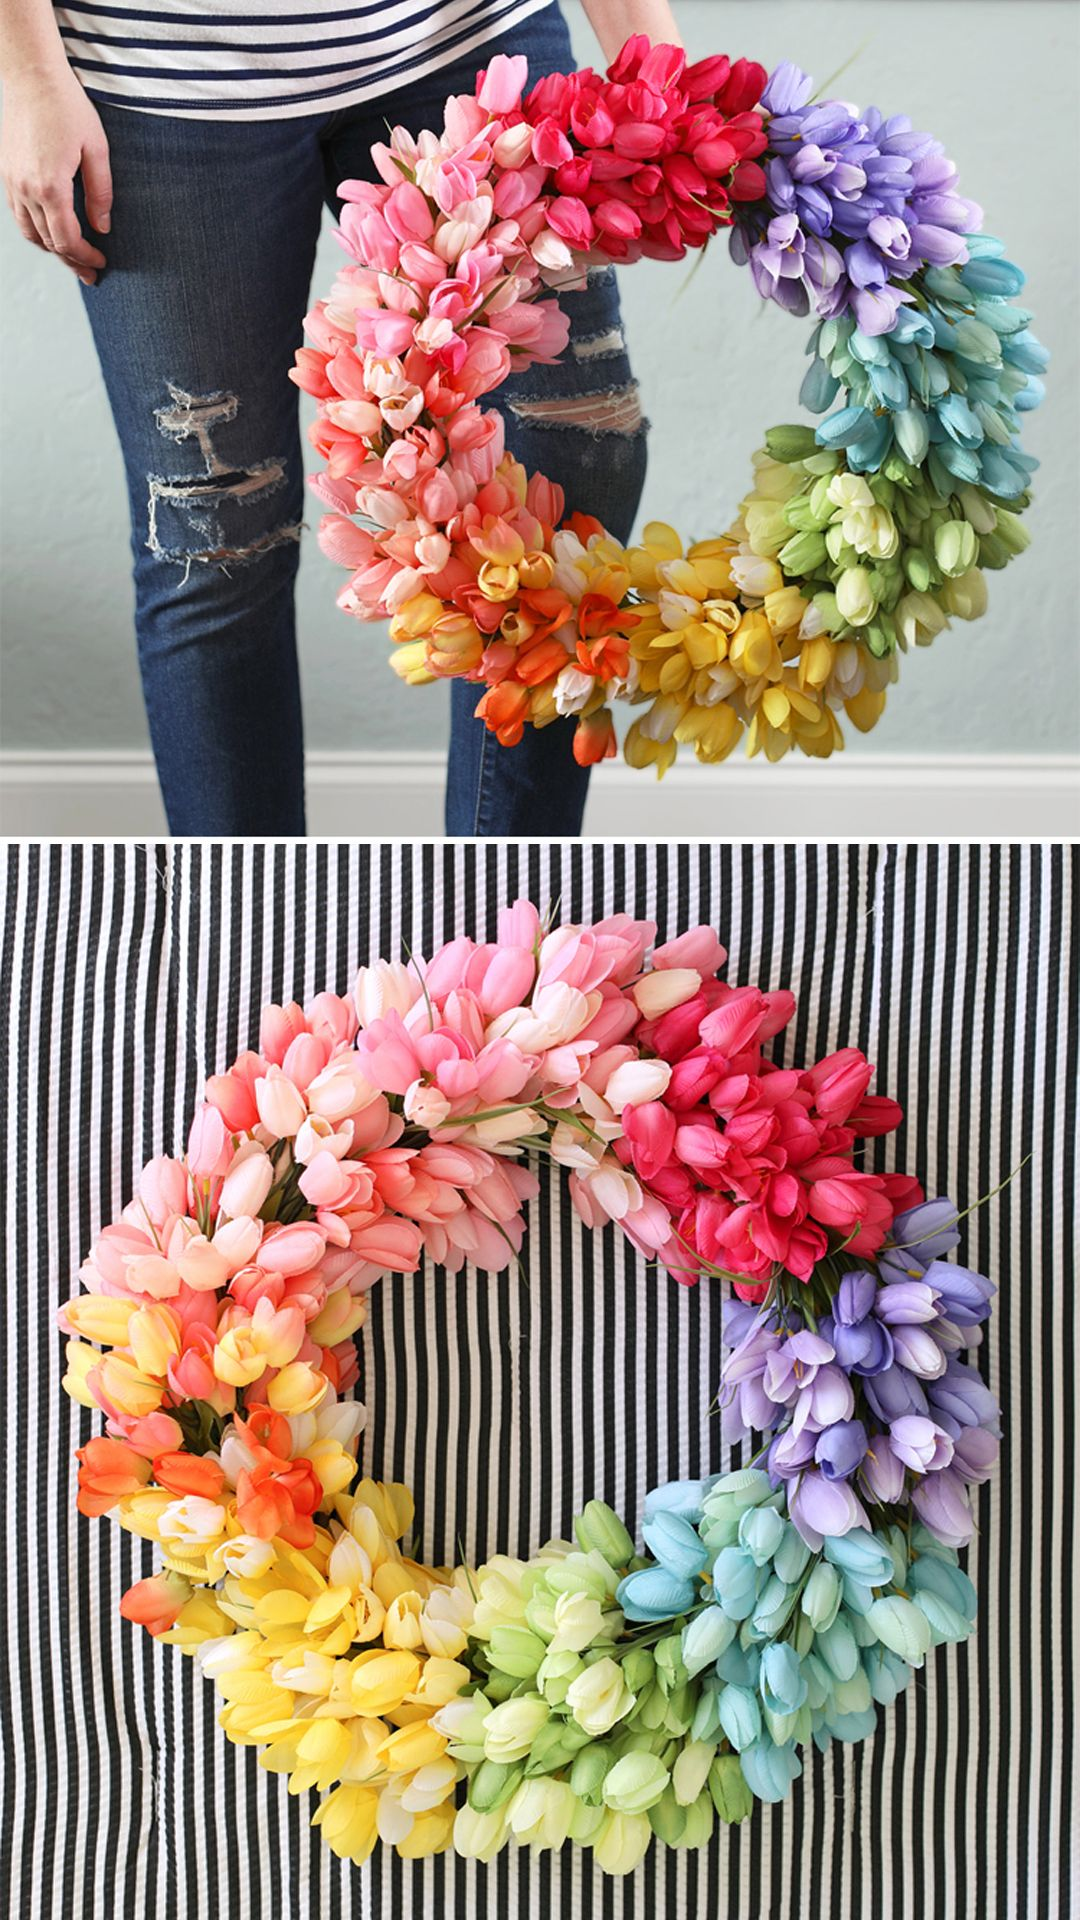 This gorgeous, colorful wreath is super easy to make and perfect for spring! I love the rainbow of tulips.